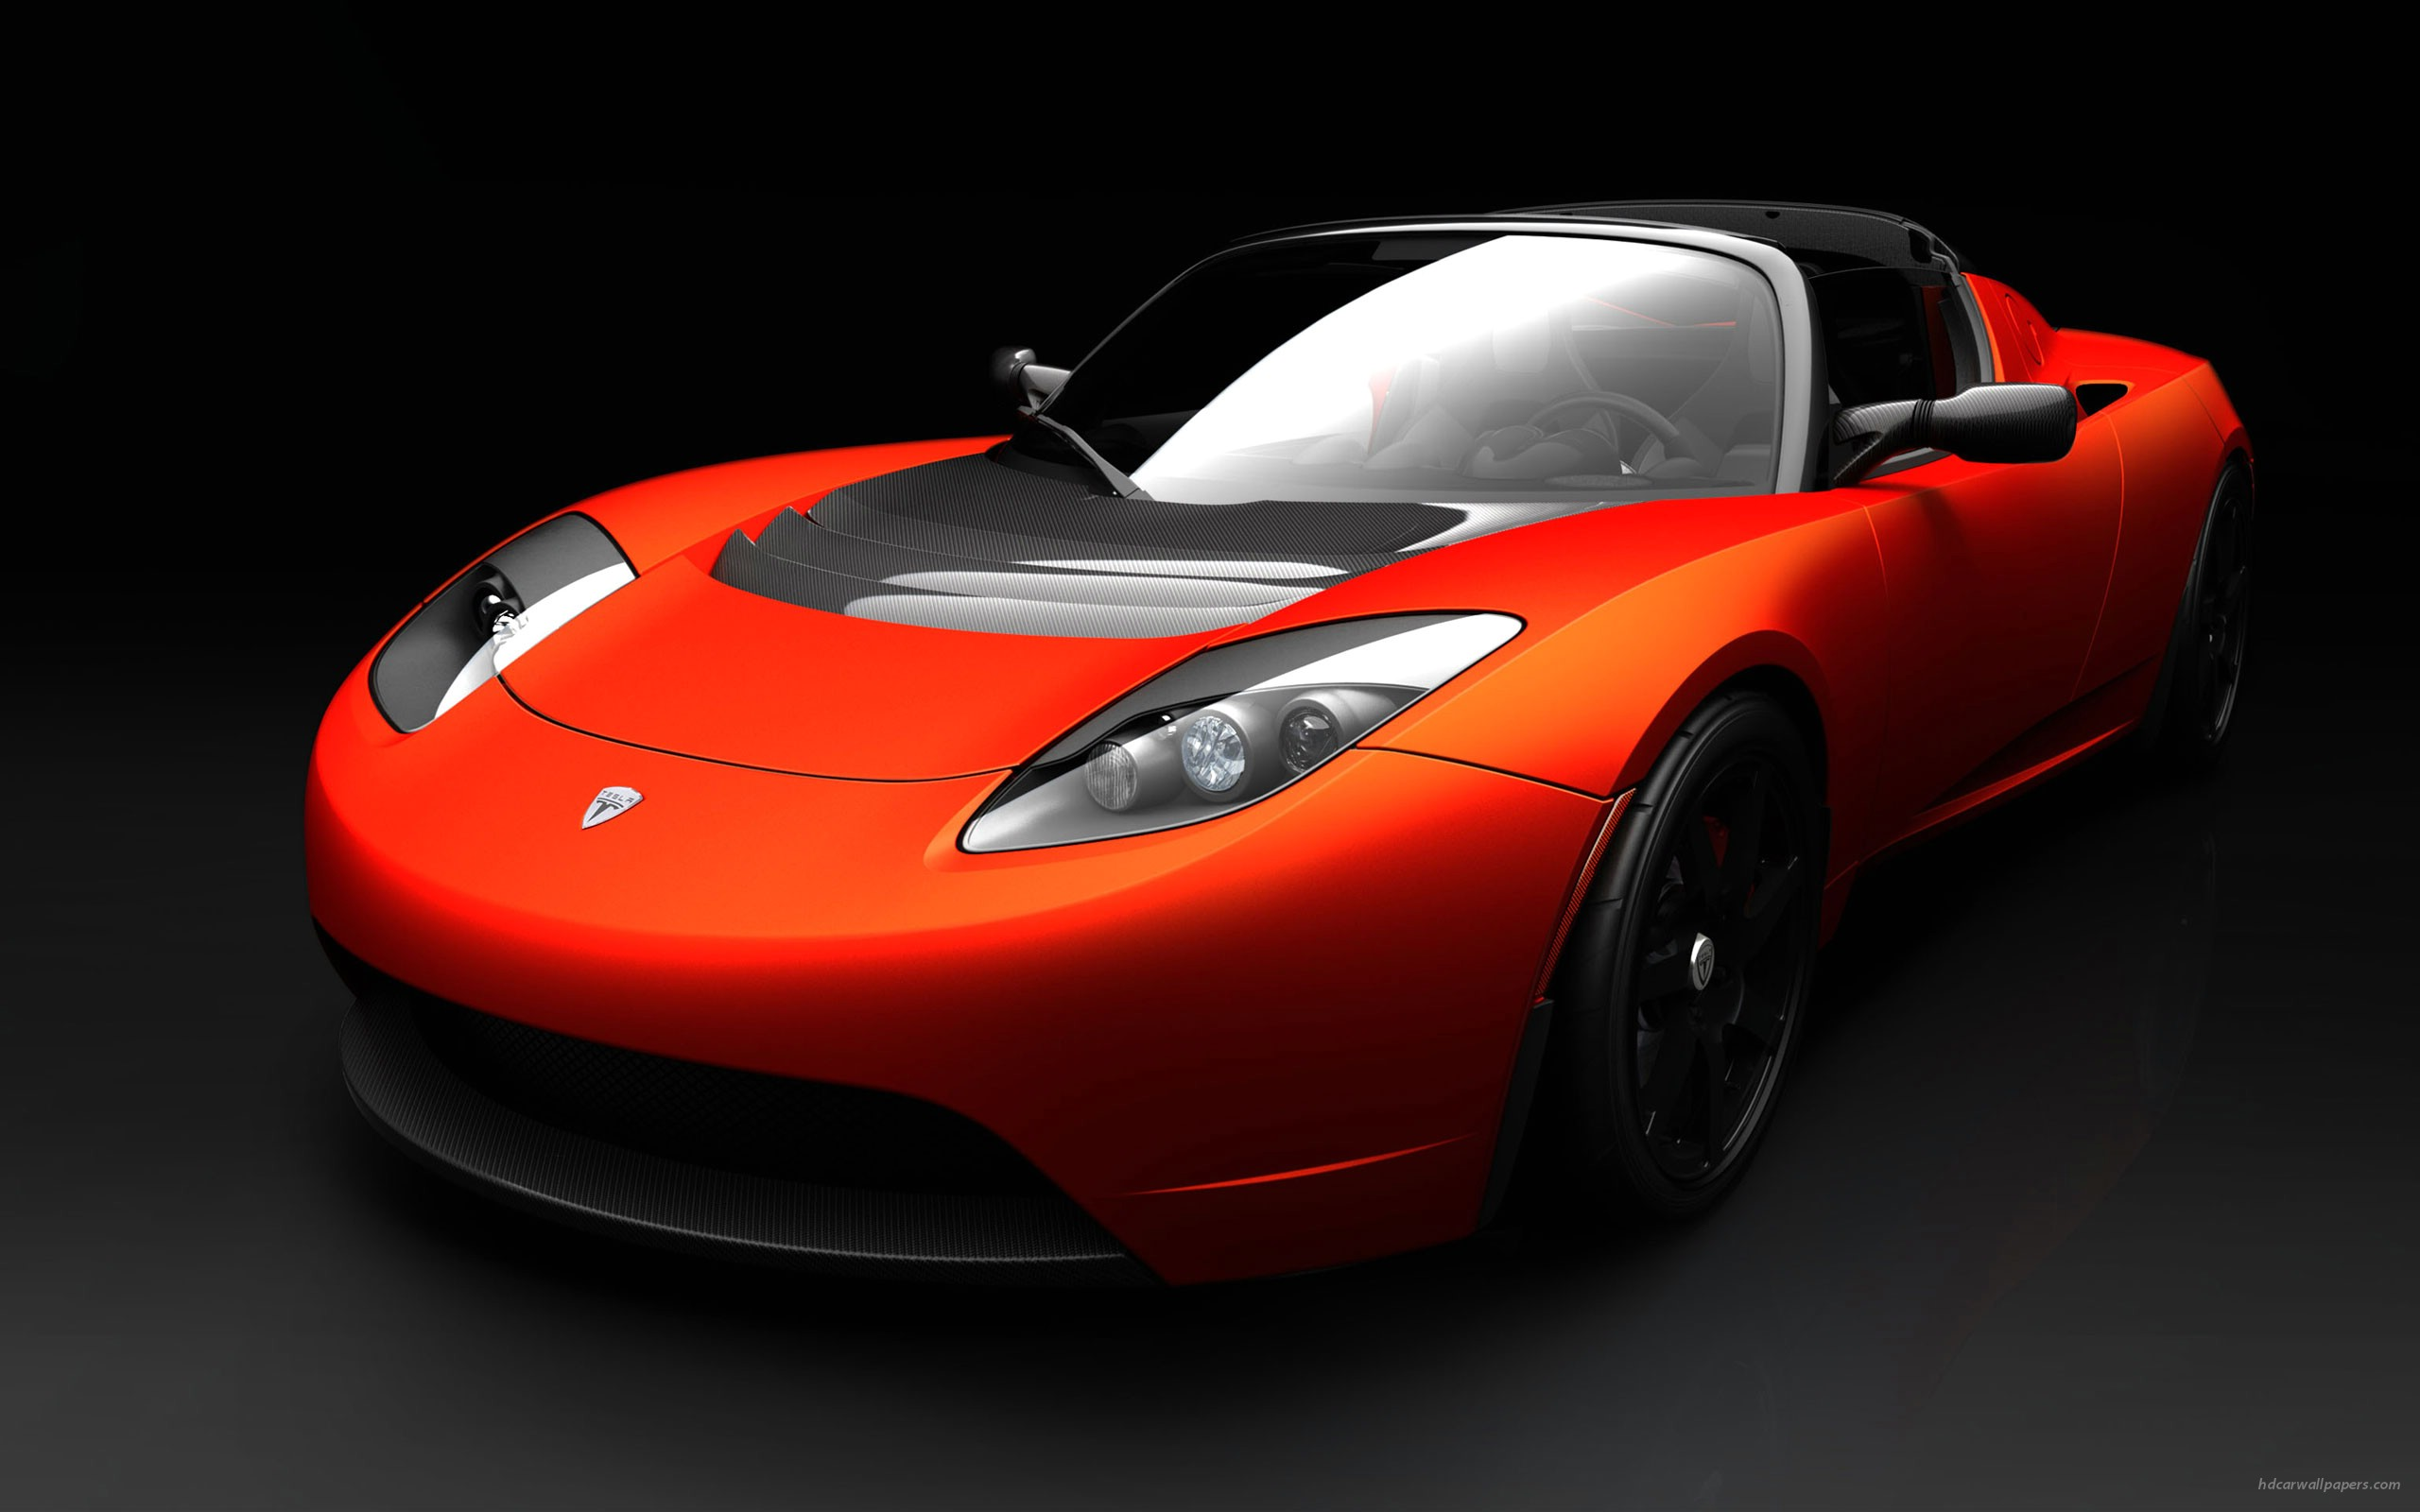 Tesla Roadster Sports Car Wallpapers HD Wallpapers 2560x1600